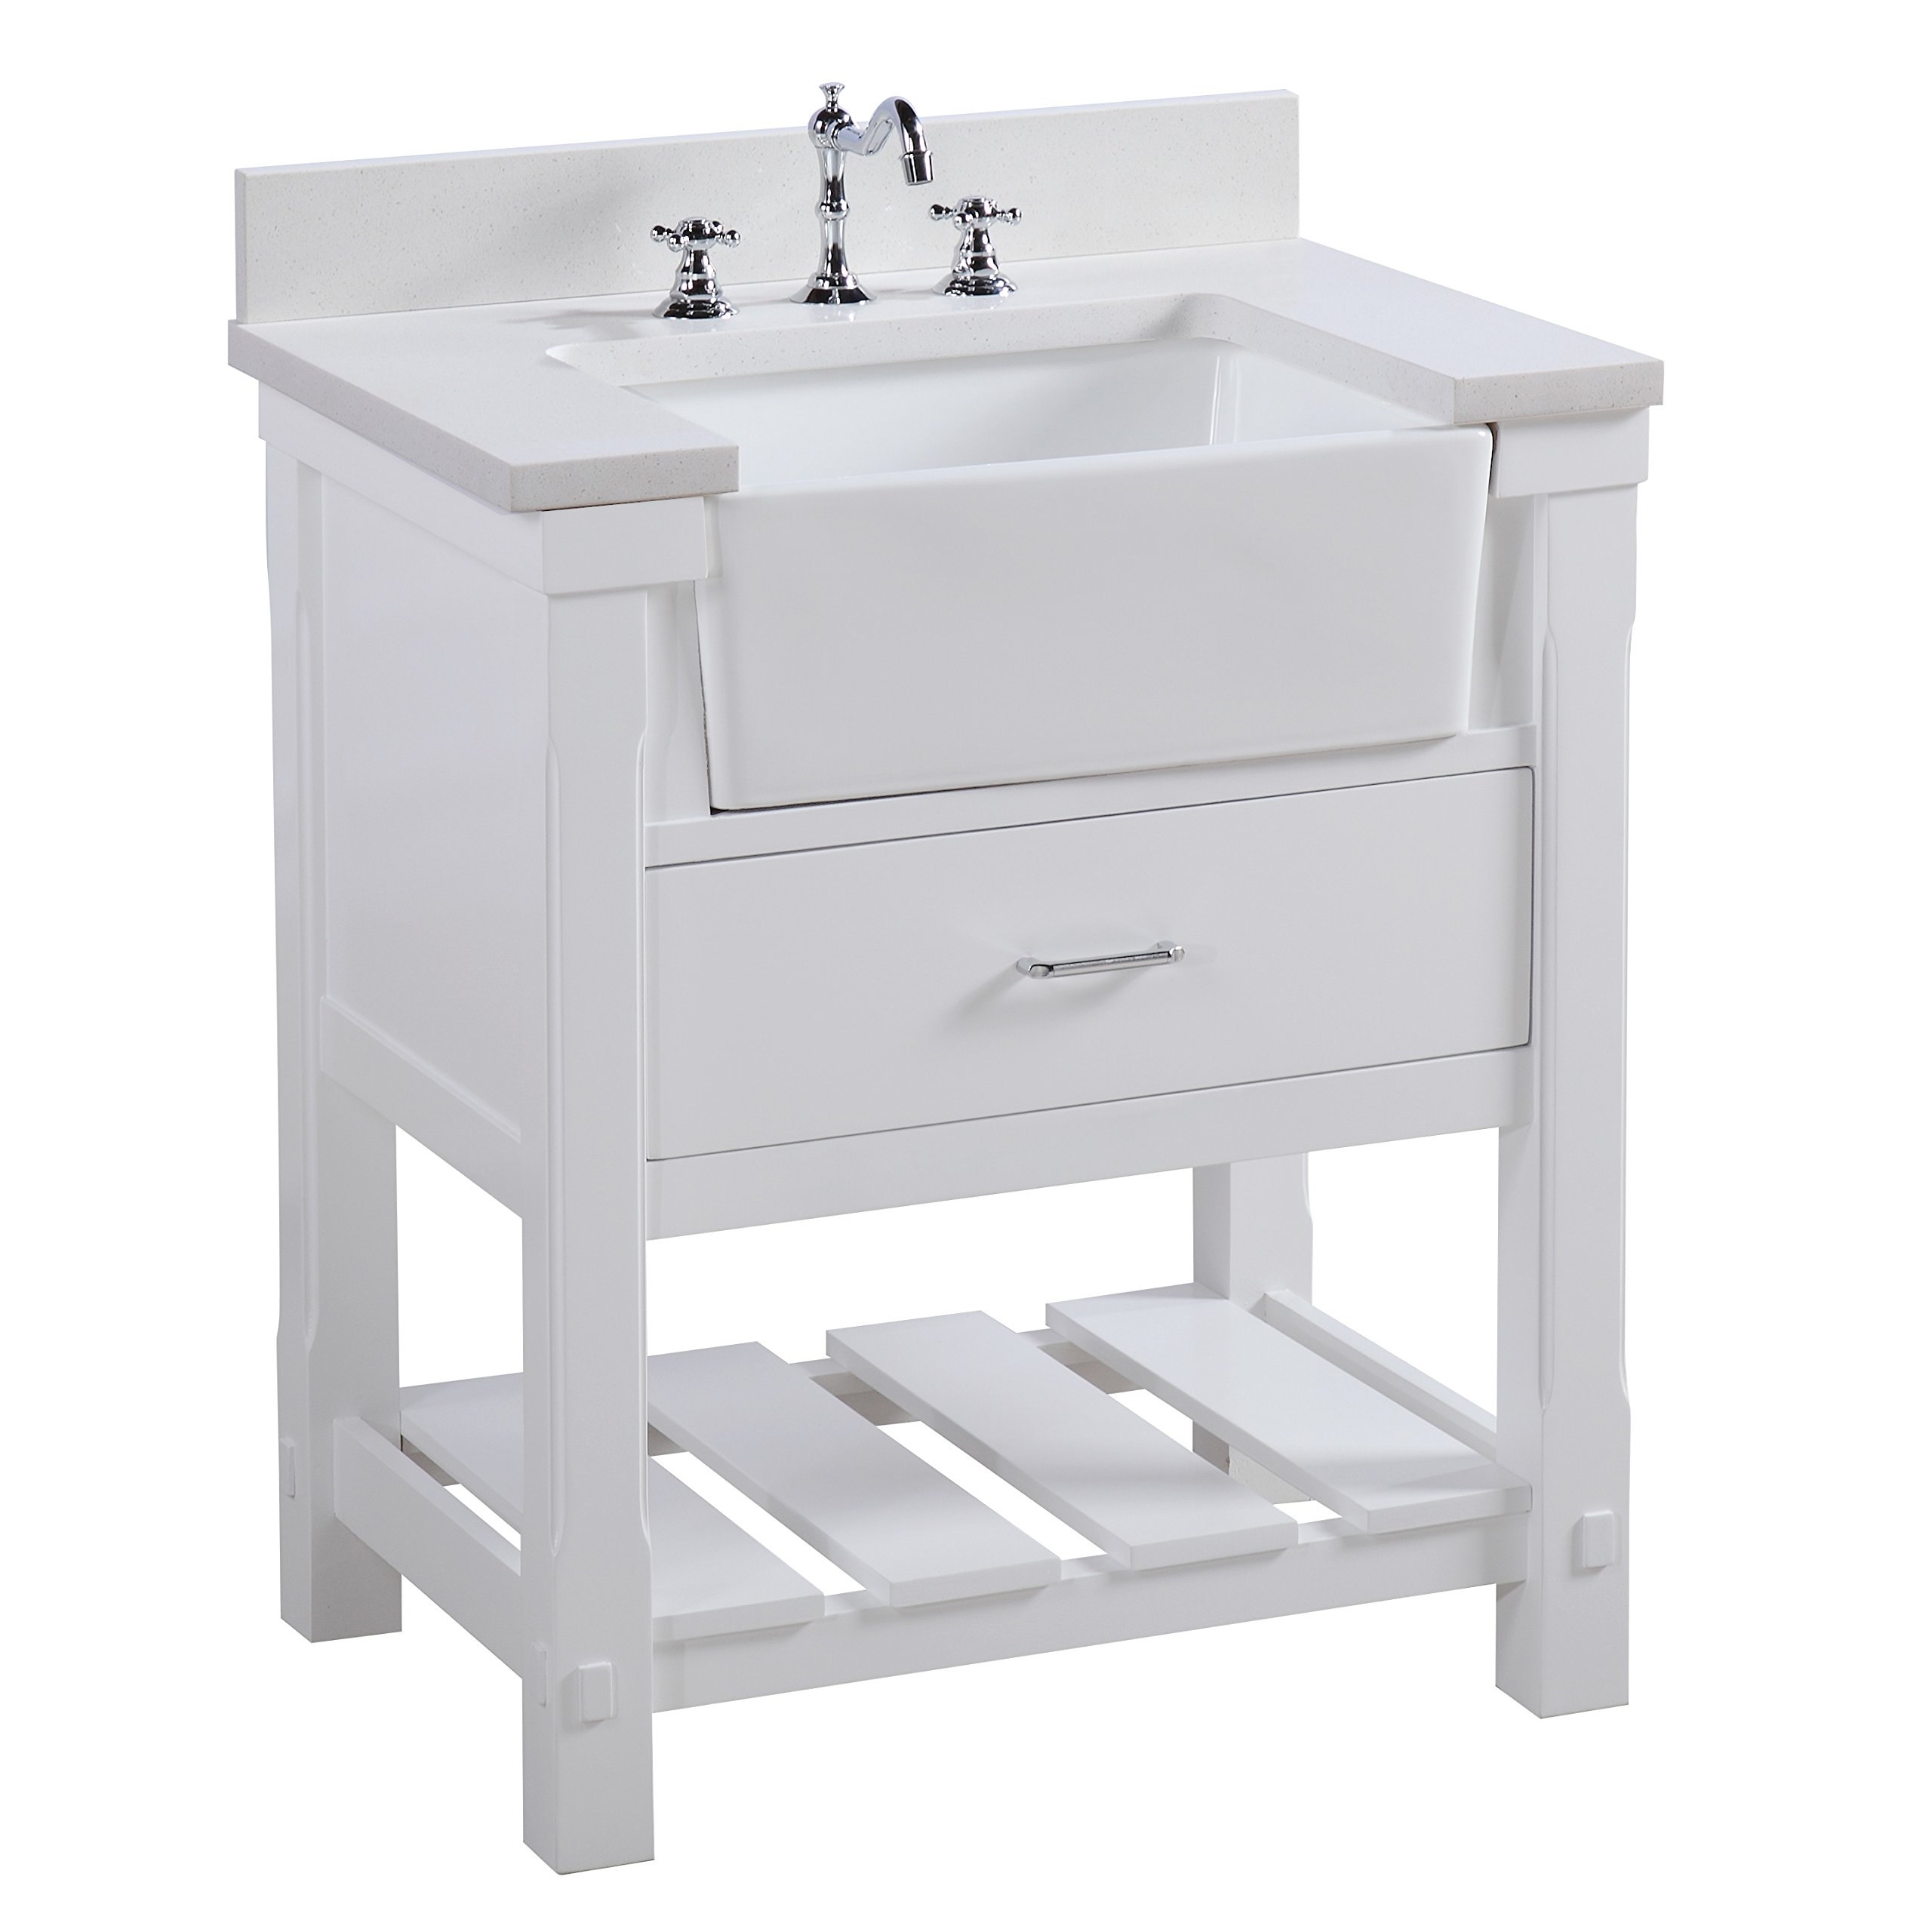 Charlotte 30-inch Bathroom Vanity (Quartz/White): Includes a Quartz Countertop, White Cabinet with Soft Close Drawers, and White Ceramic Farmhouse Apron Sink by Kitchen Bath Collection